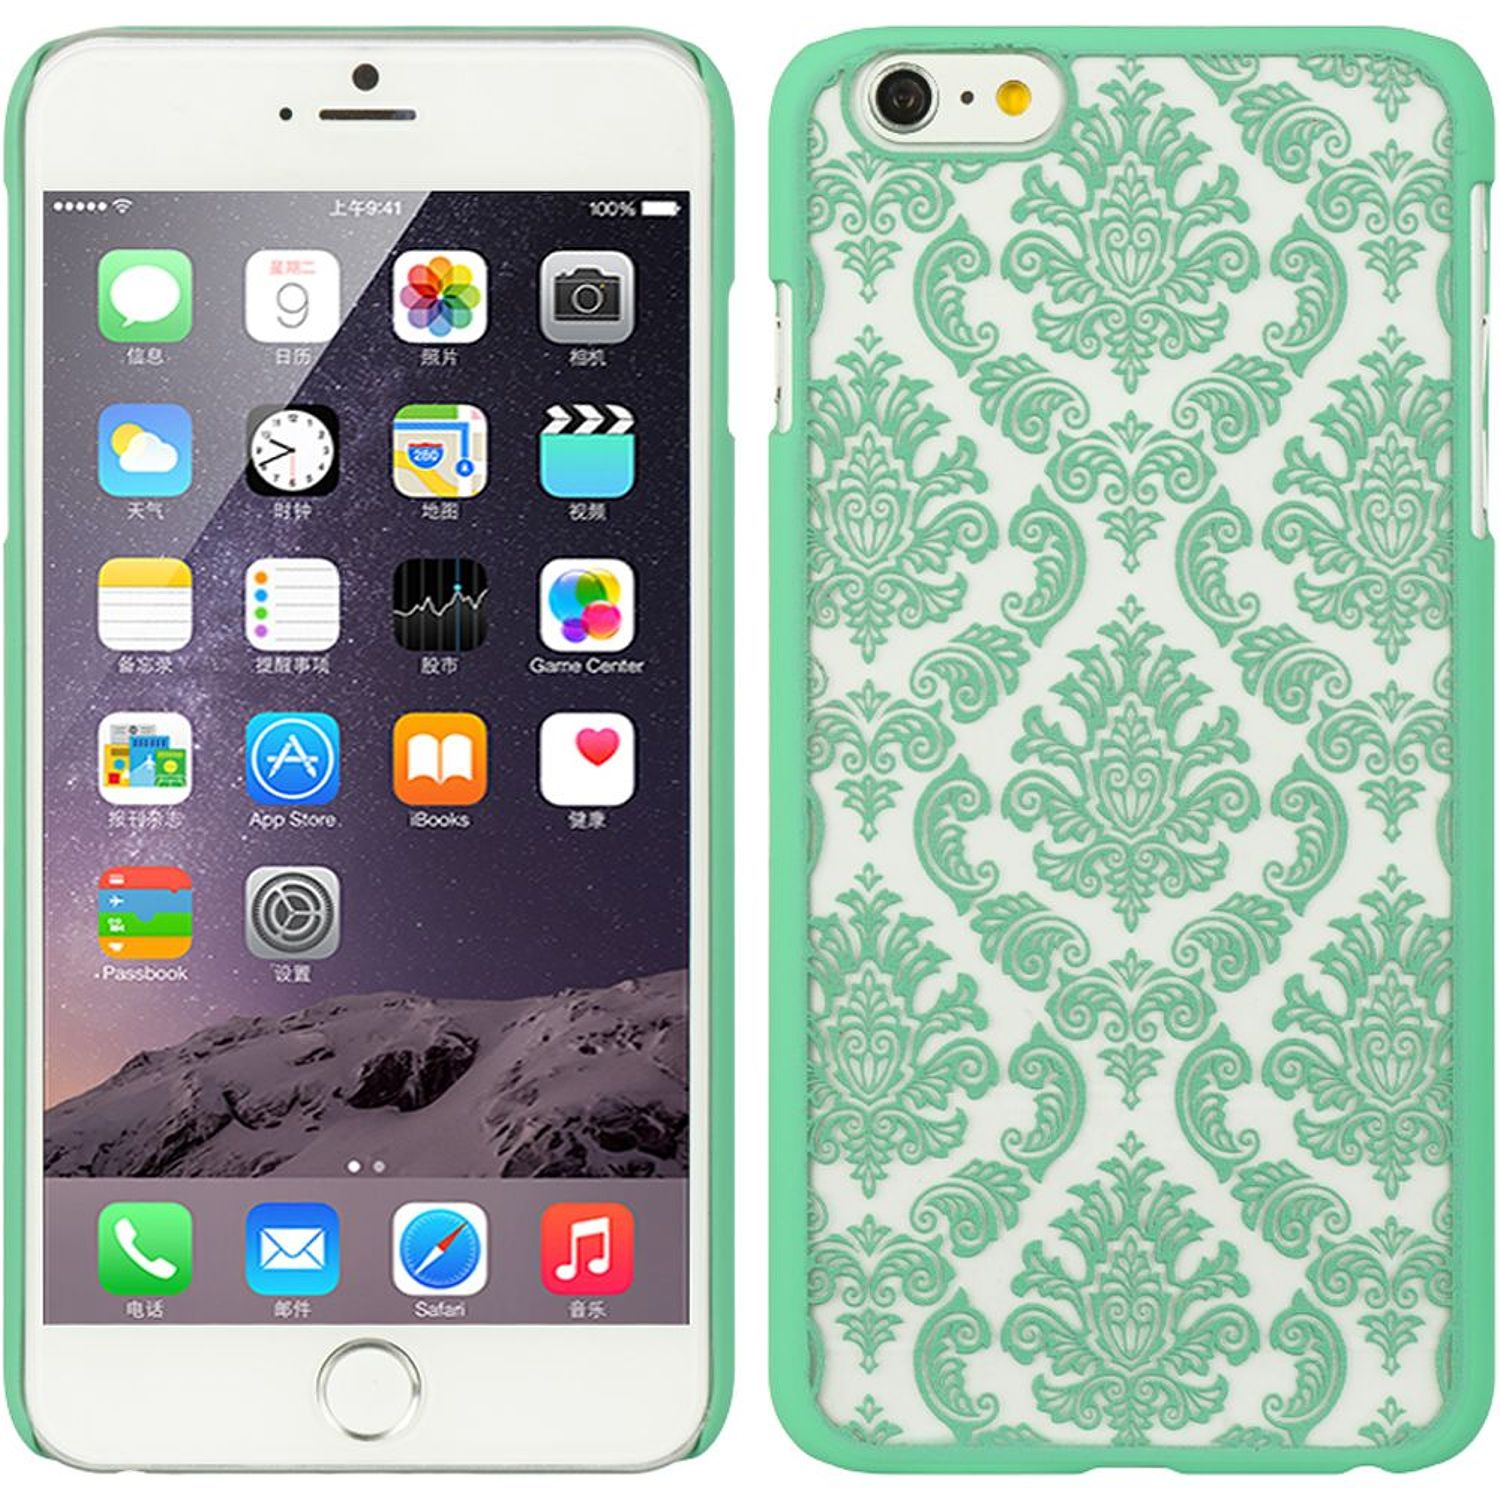 iPhone 6s plus case by Insten Hard Rubber Coated Case for Apple iPhone 6s Plus / 6 Plus - Green/White